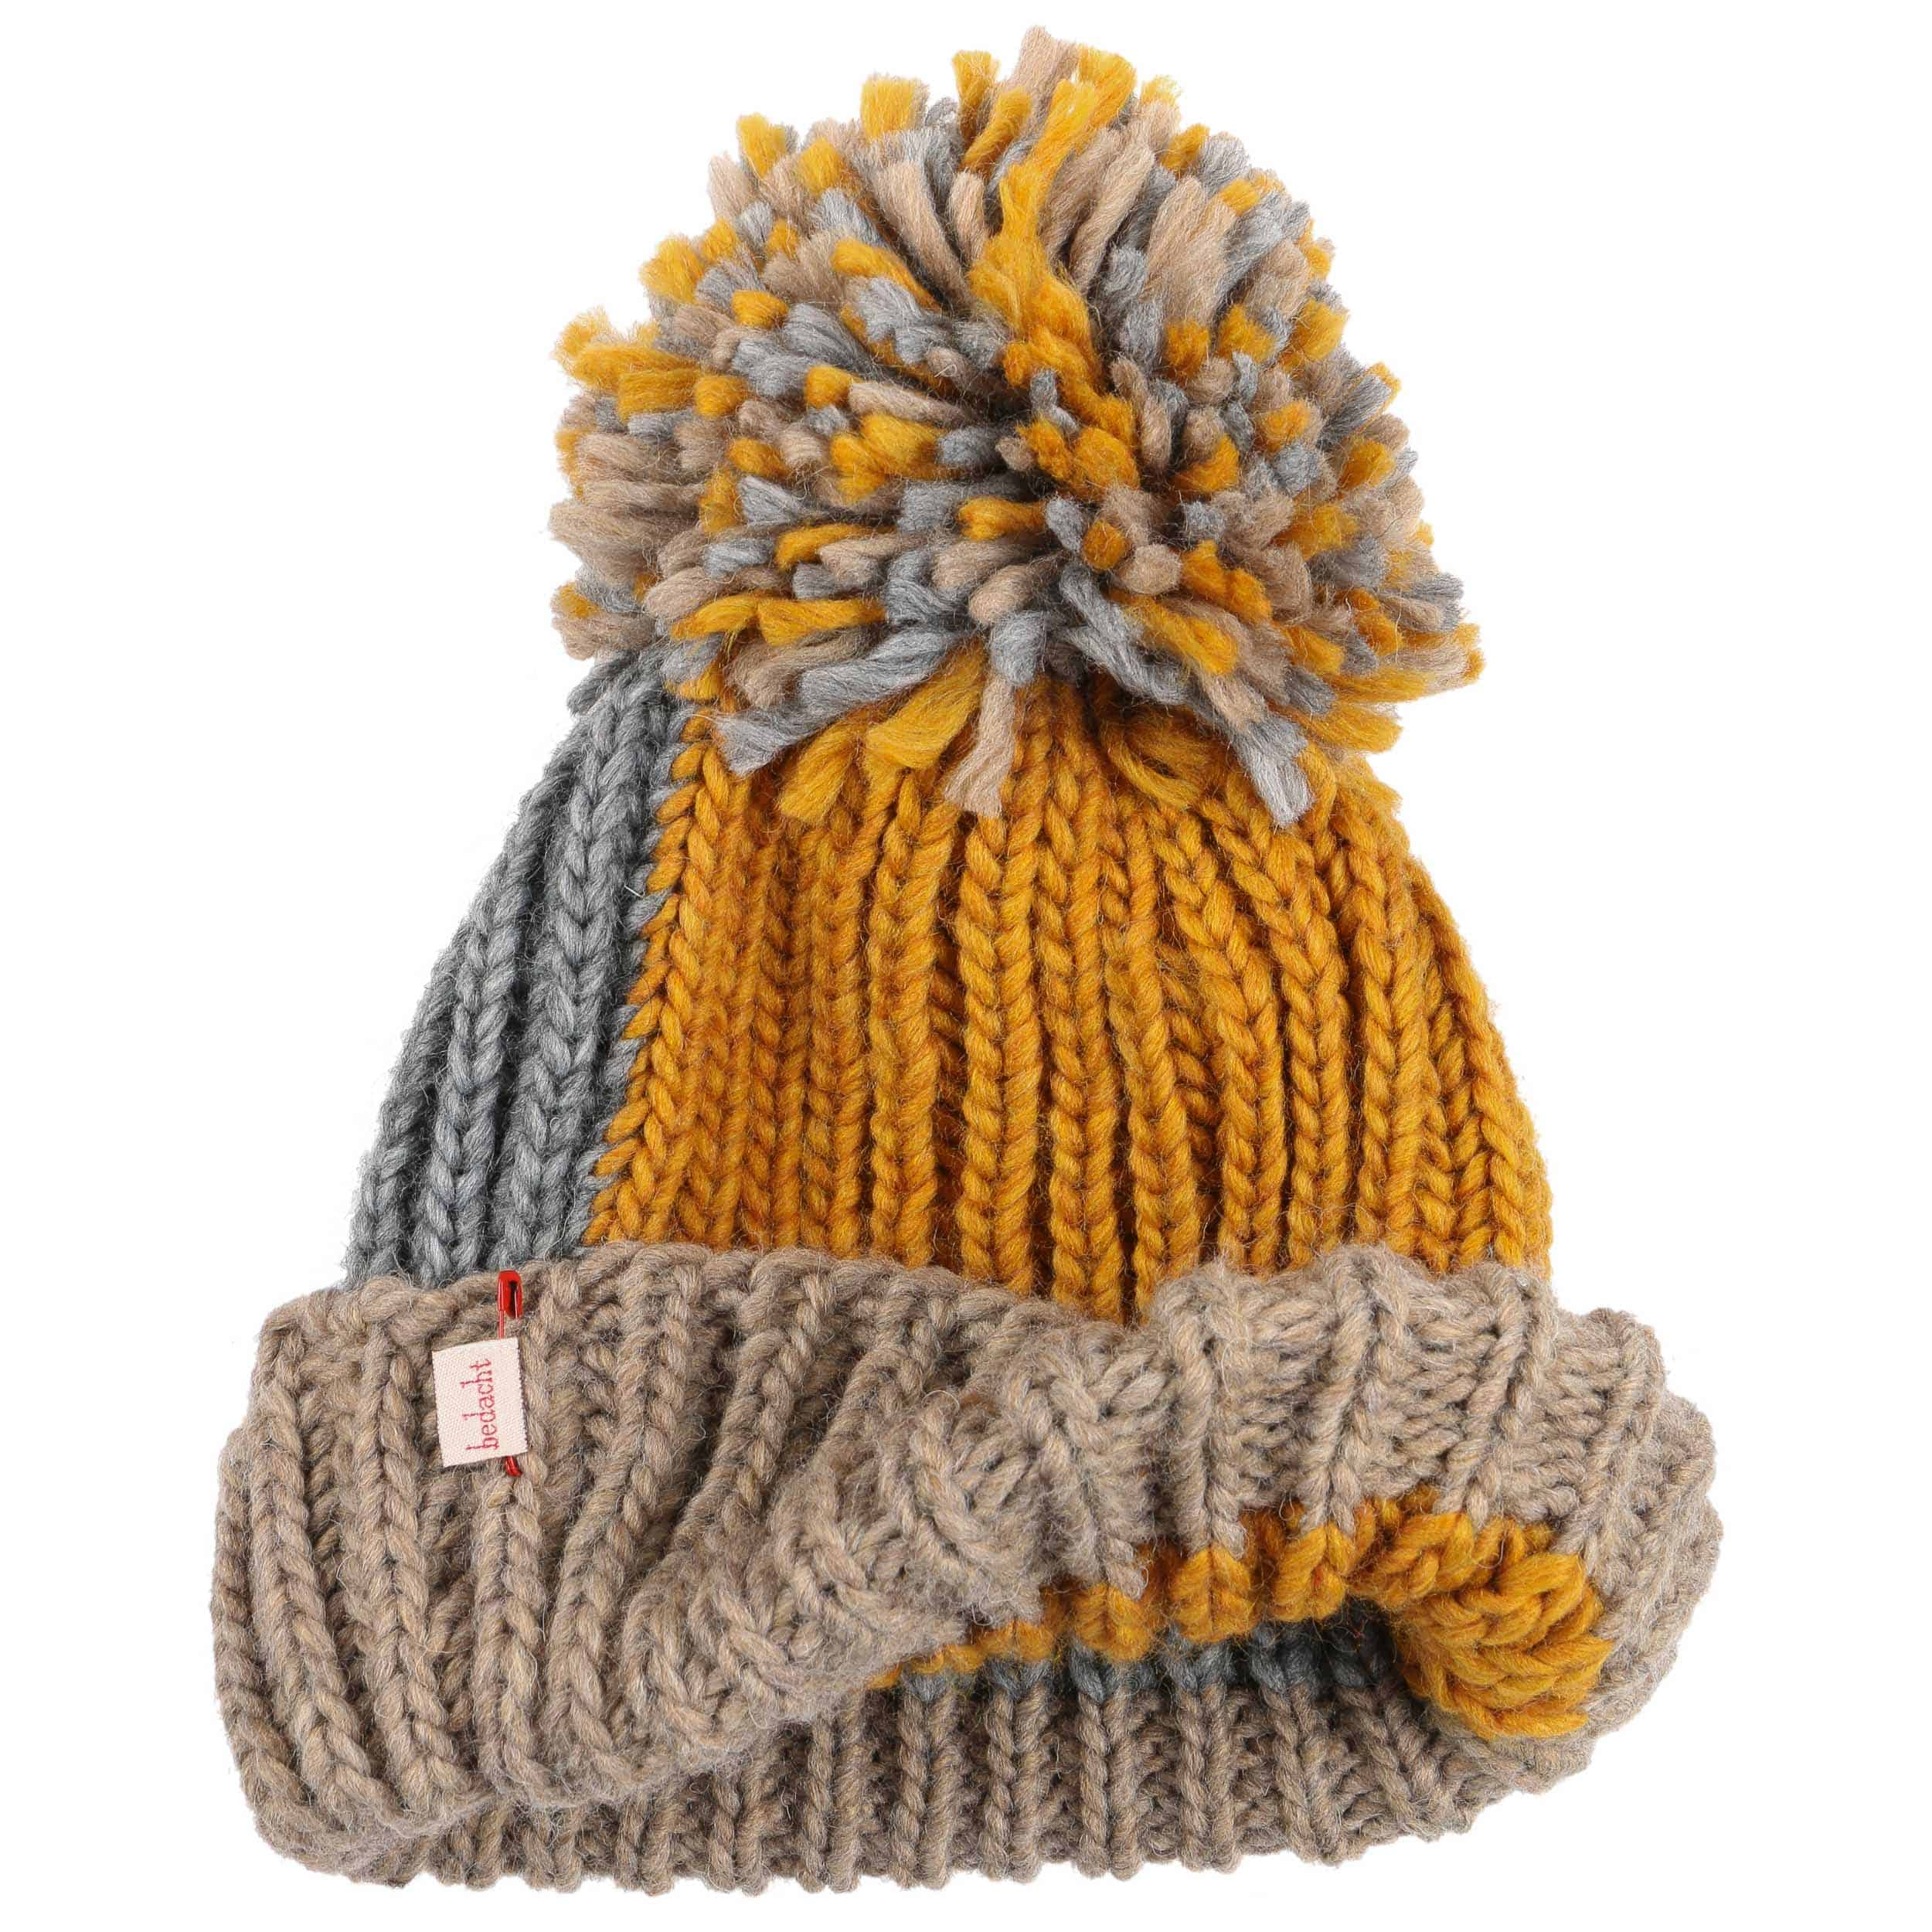 ... Caos Pompom Hat by bedacht - mustard 1 ... 1f7e4d30723